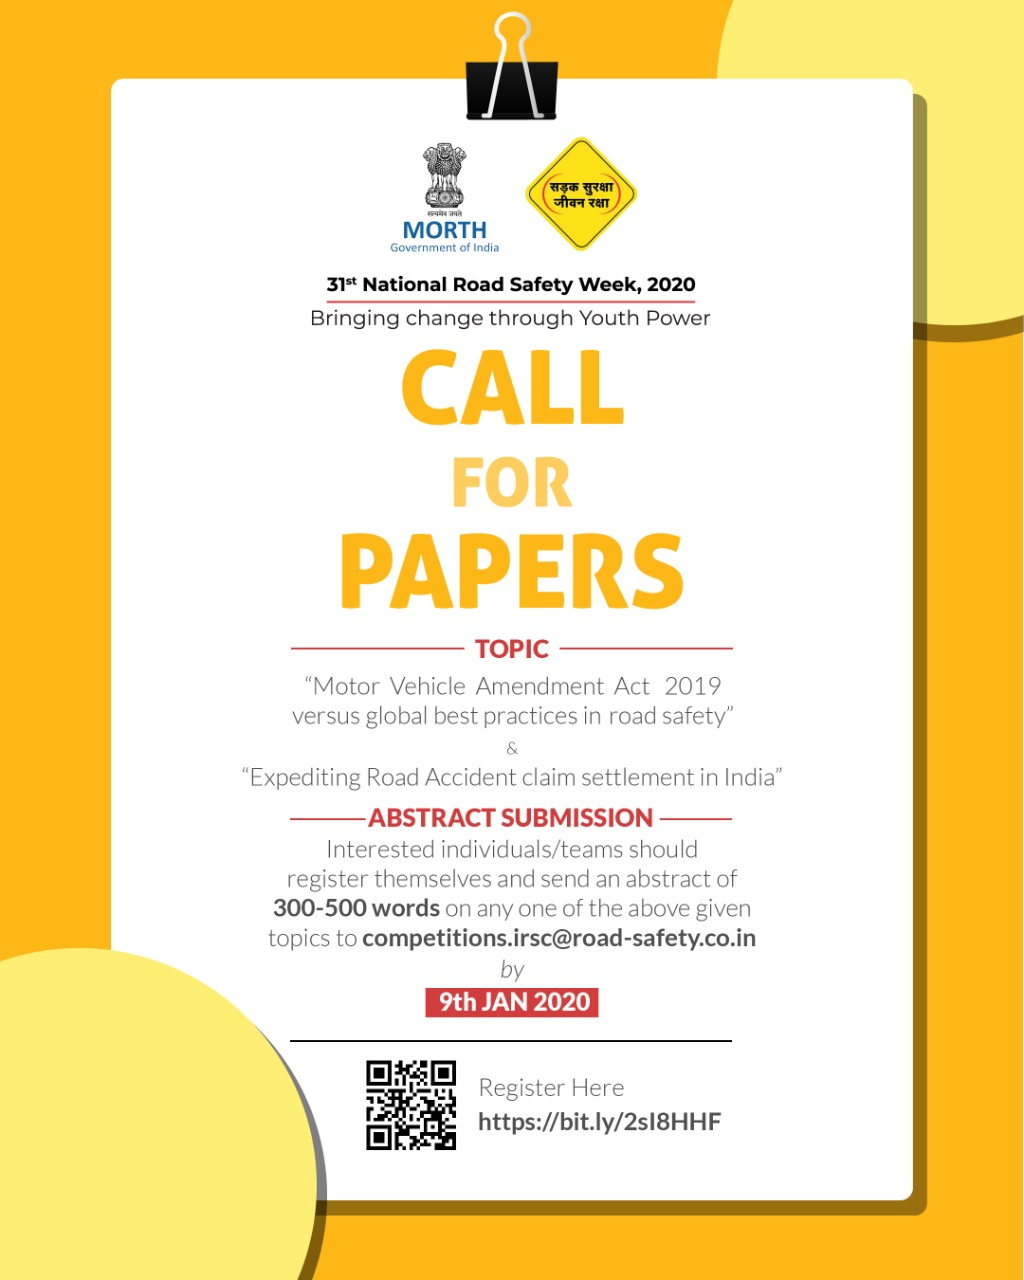 Call for Papers and Presentation by Ministry of Road Transport and Highways